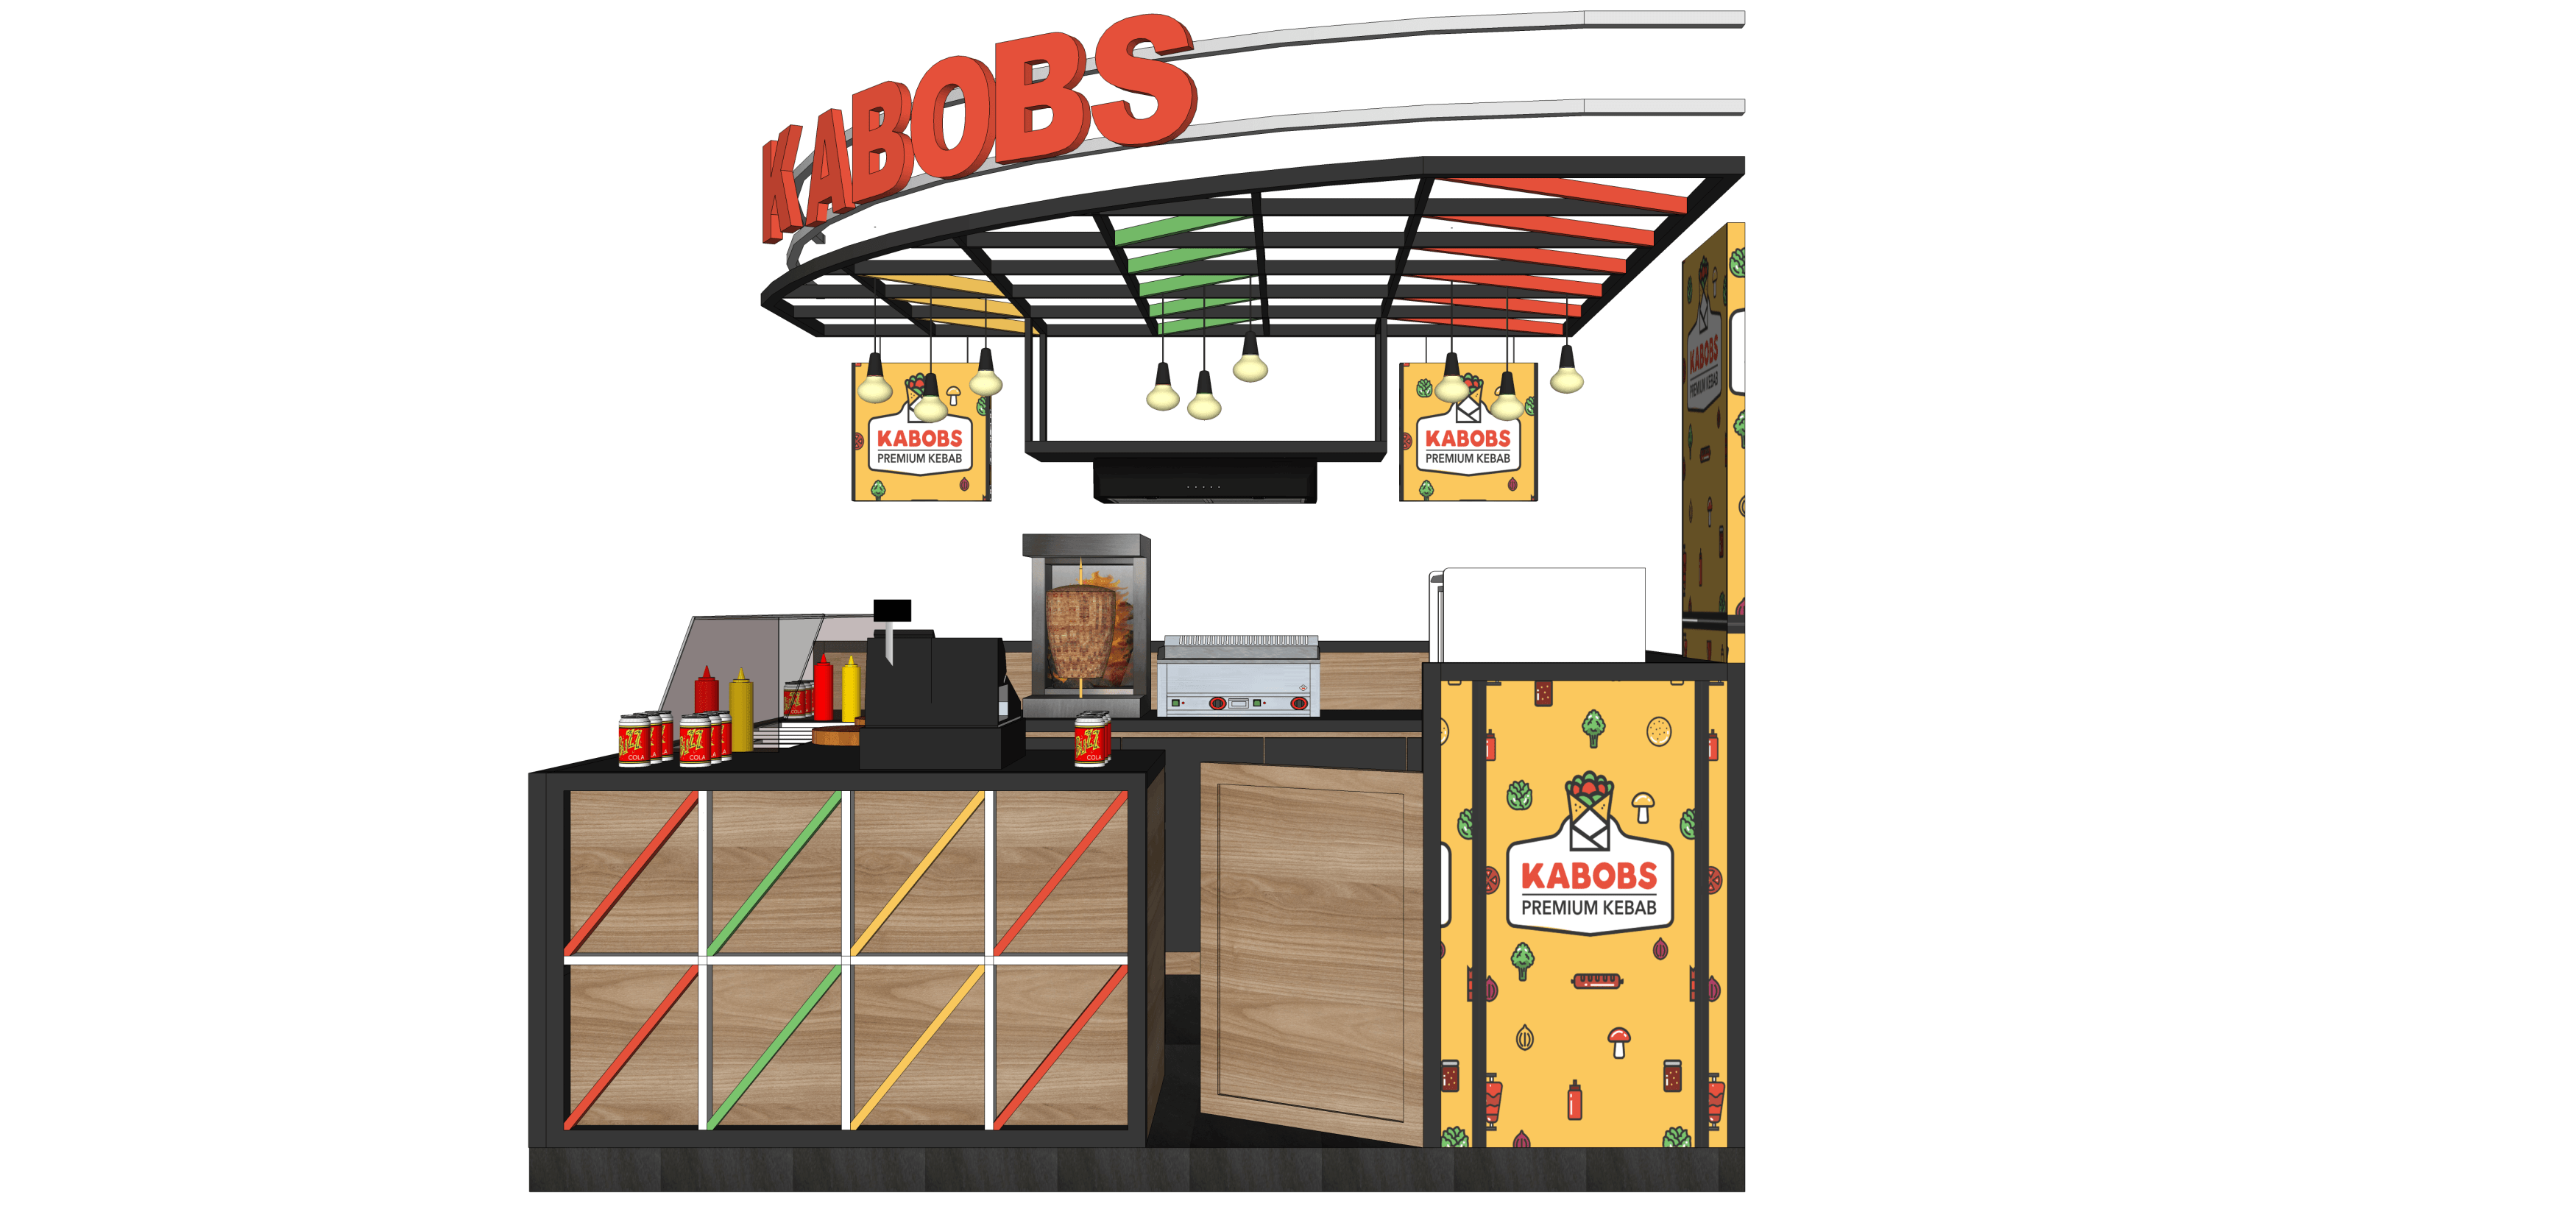 Virr Studio Kabob Premium Kebab Bandung Indah Plaza Citarum, Bandung Wetan, Bandung City, West Java 40117, Indonesia Citarum, Bandung Wetan, Bandung City, West Java 40117, Indonesia Kabobs-Booth-Design-New-01 Industrial,kontemporer,modern  36254